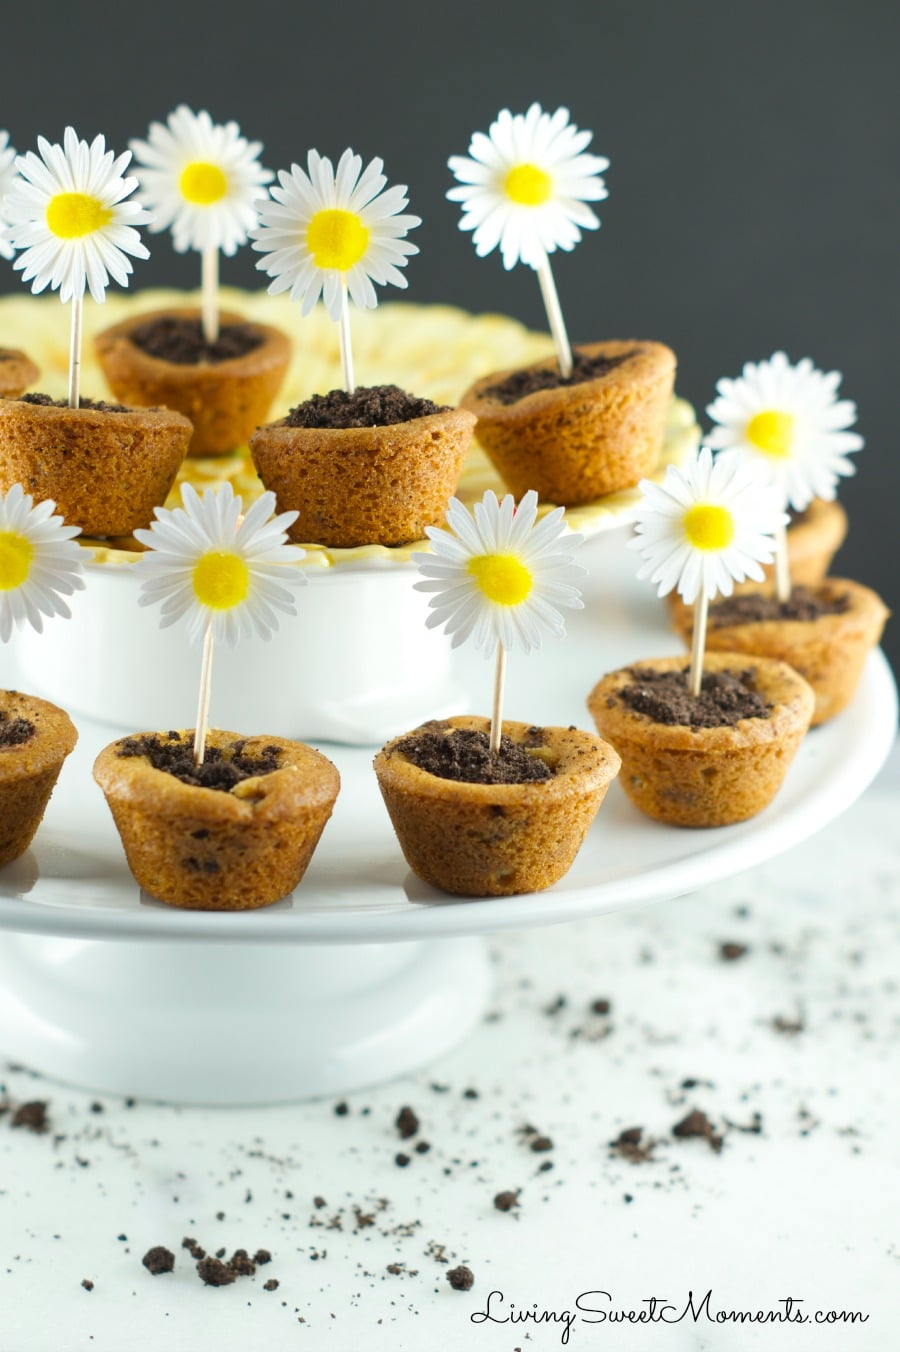 Flower Pot Cookies - Chocolate Chip Cookie cups filled with hazelnut chocolate and topped with crushed chocolate cookies. Welcome Spring with yummy cookies.